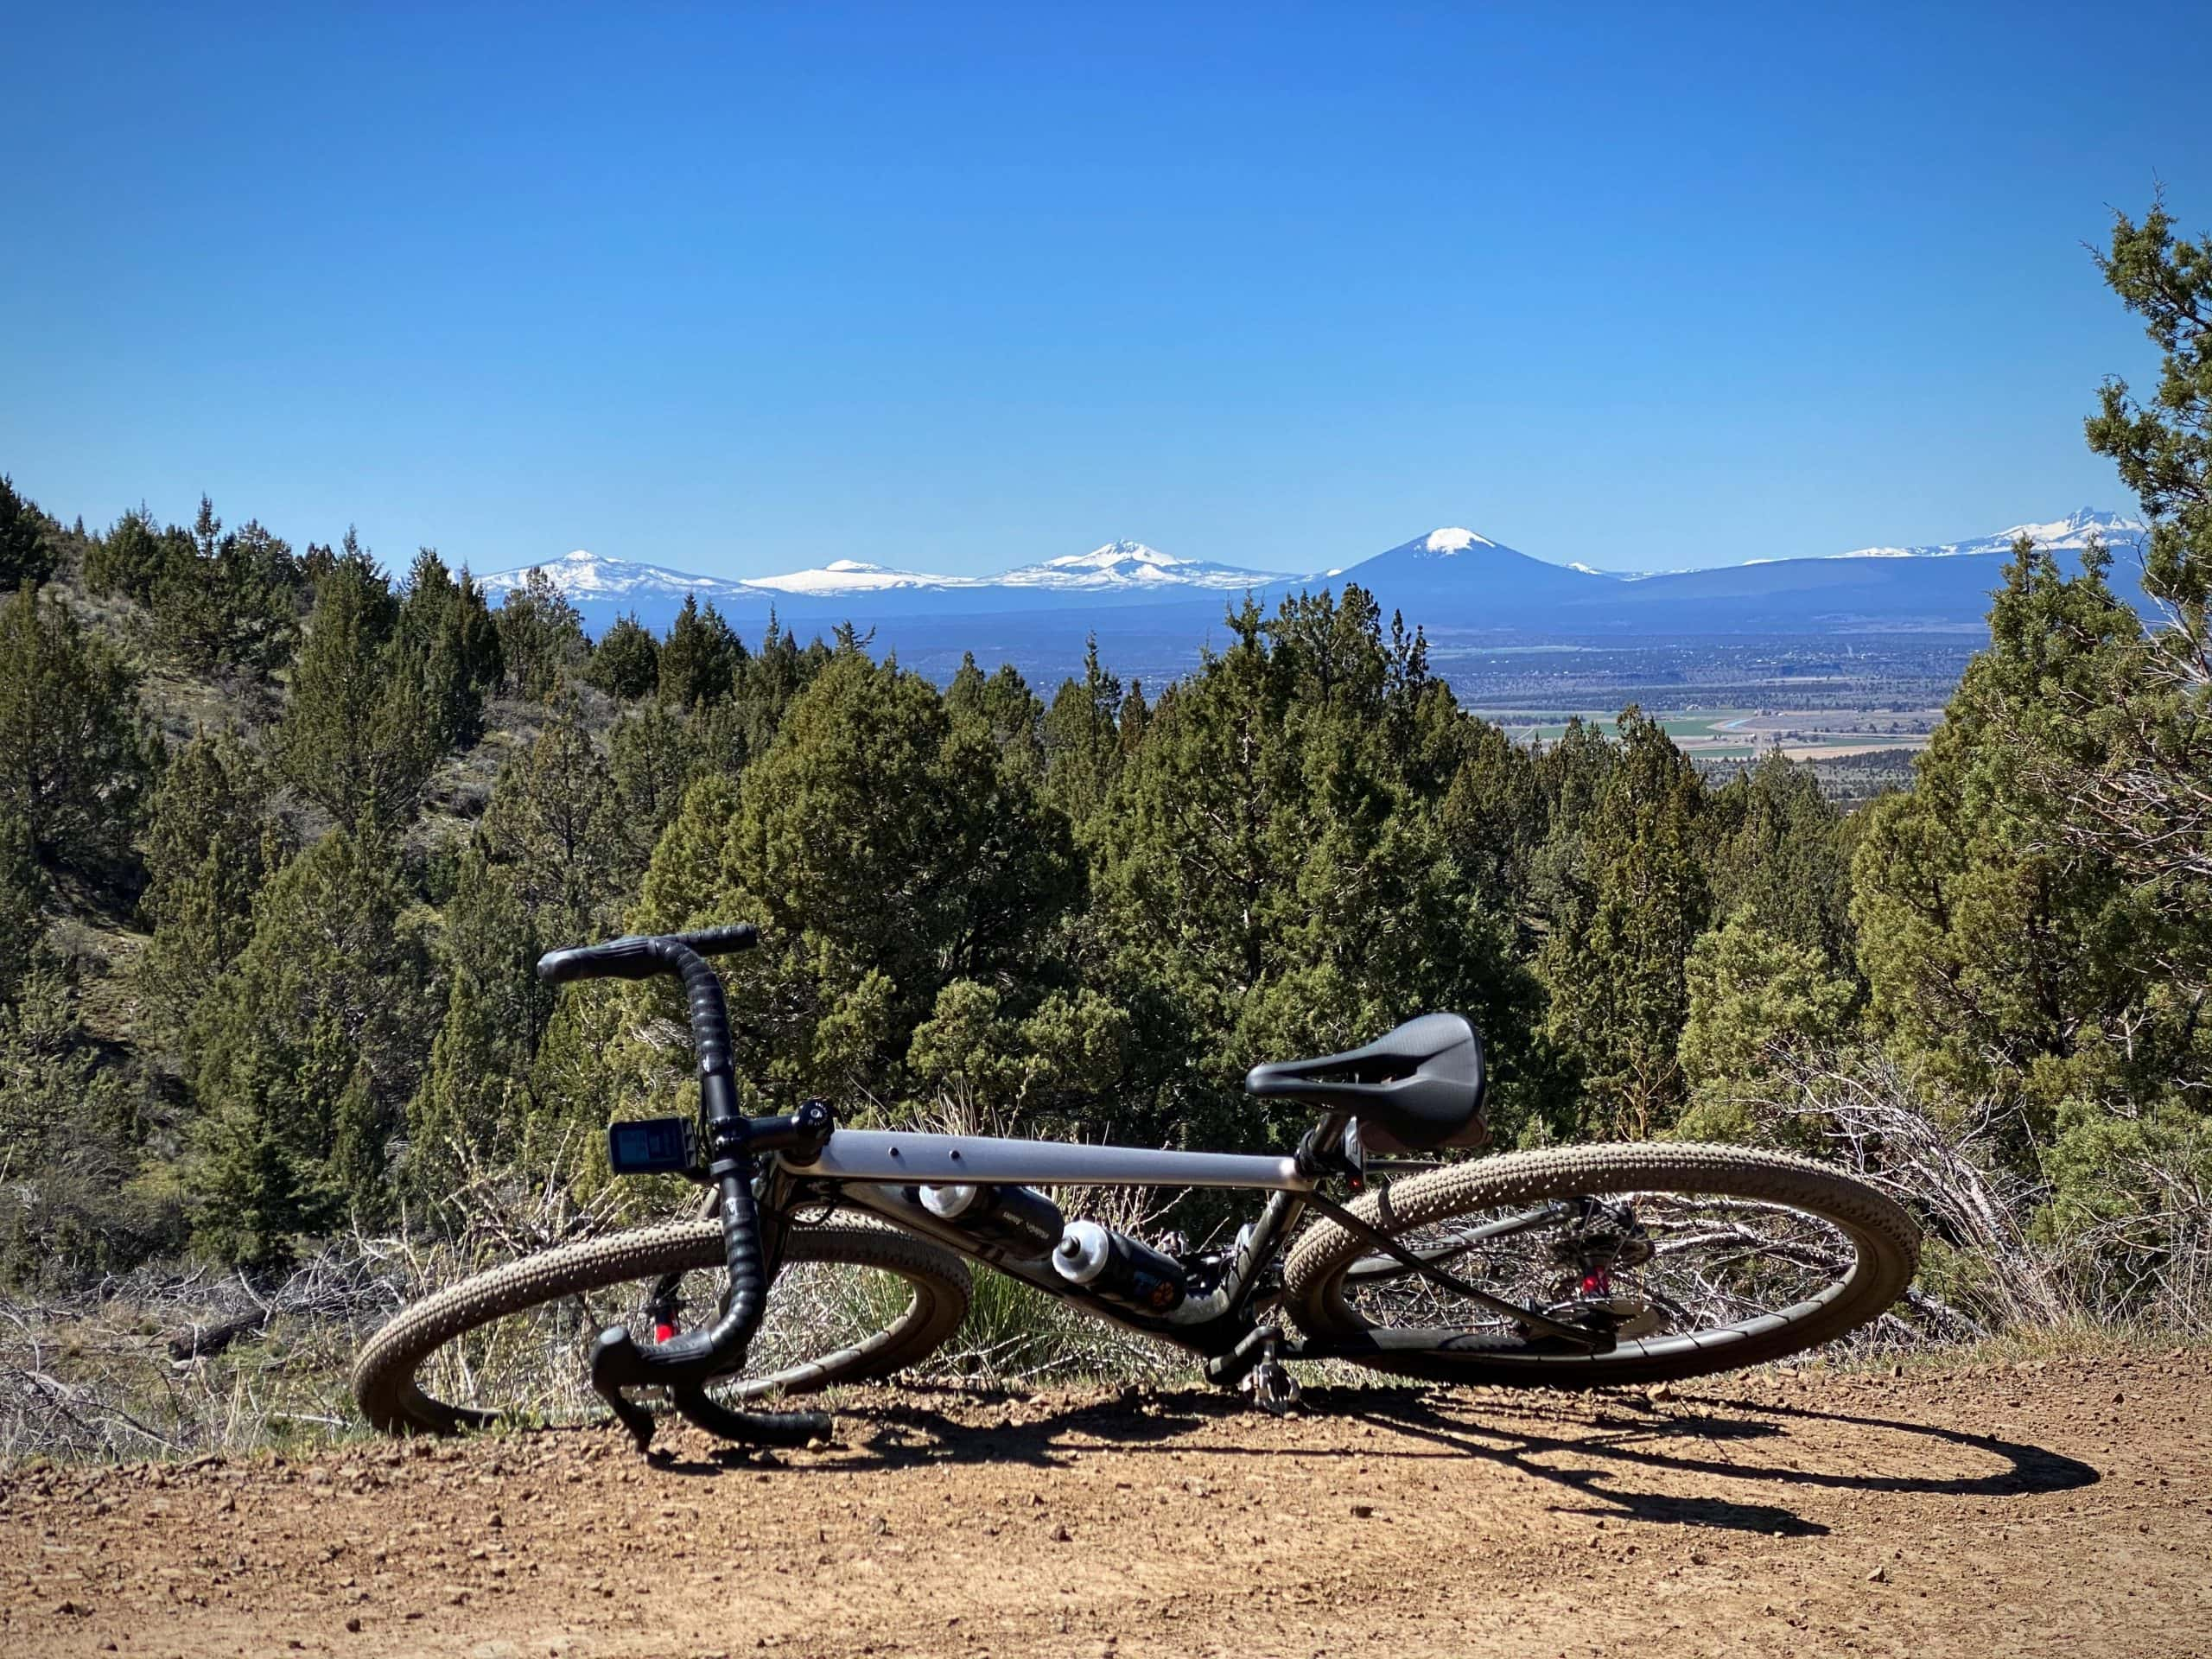 Bike on gravel road with Cascade mountains in the background.